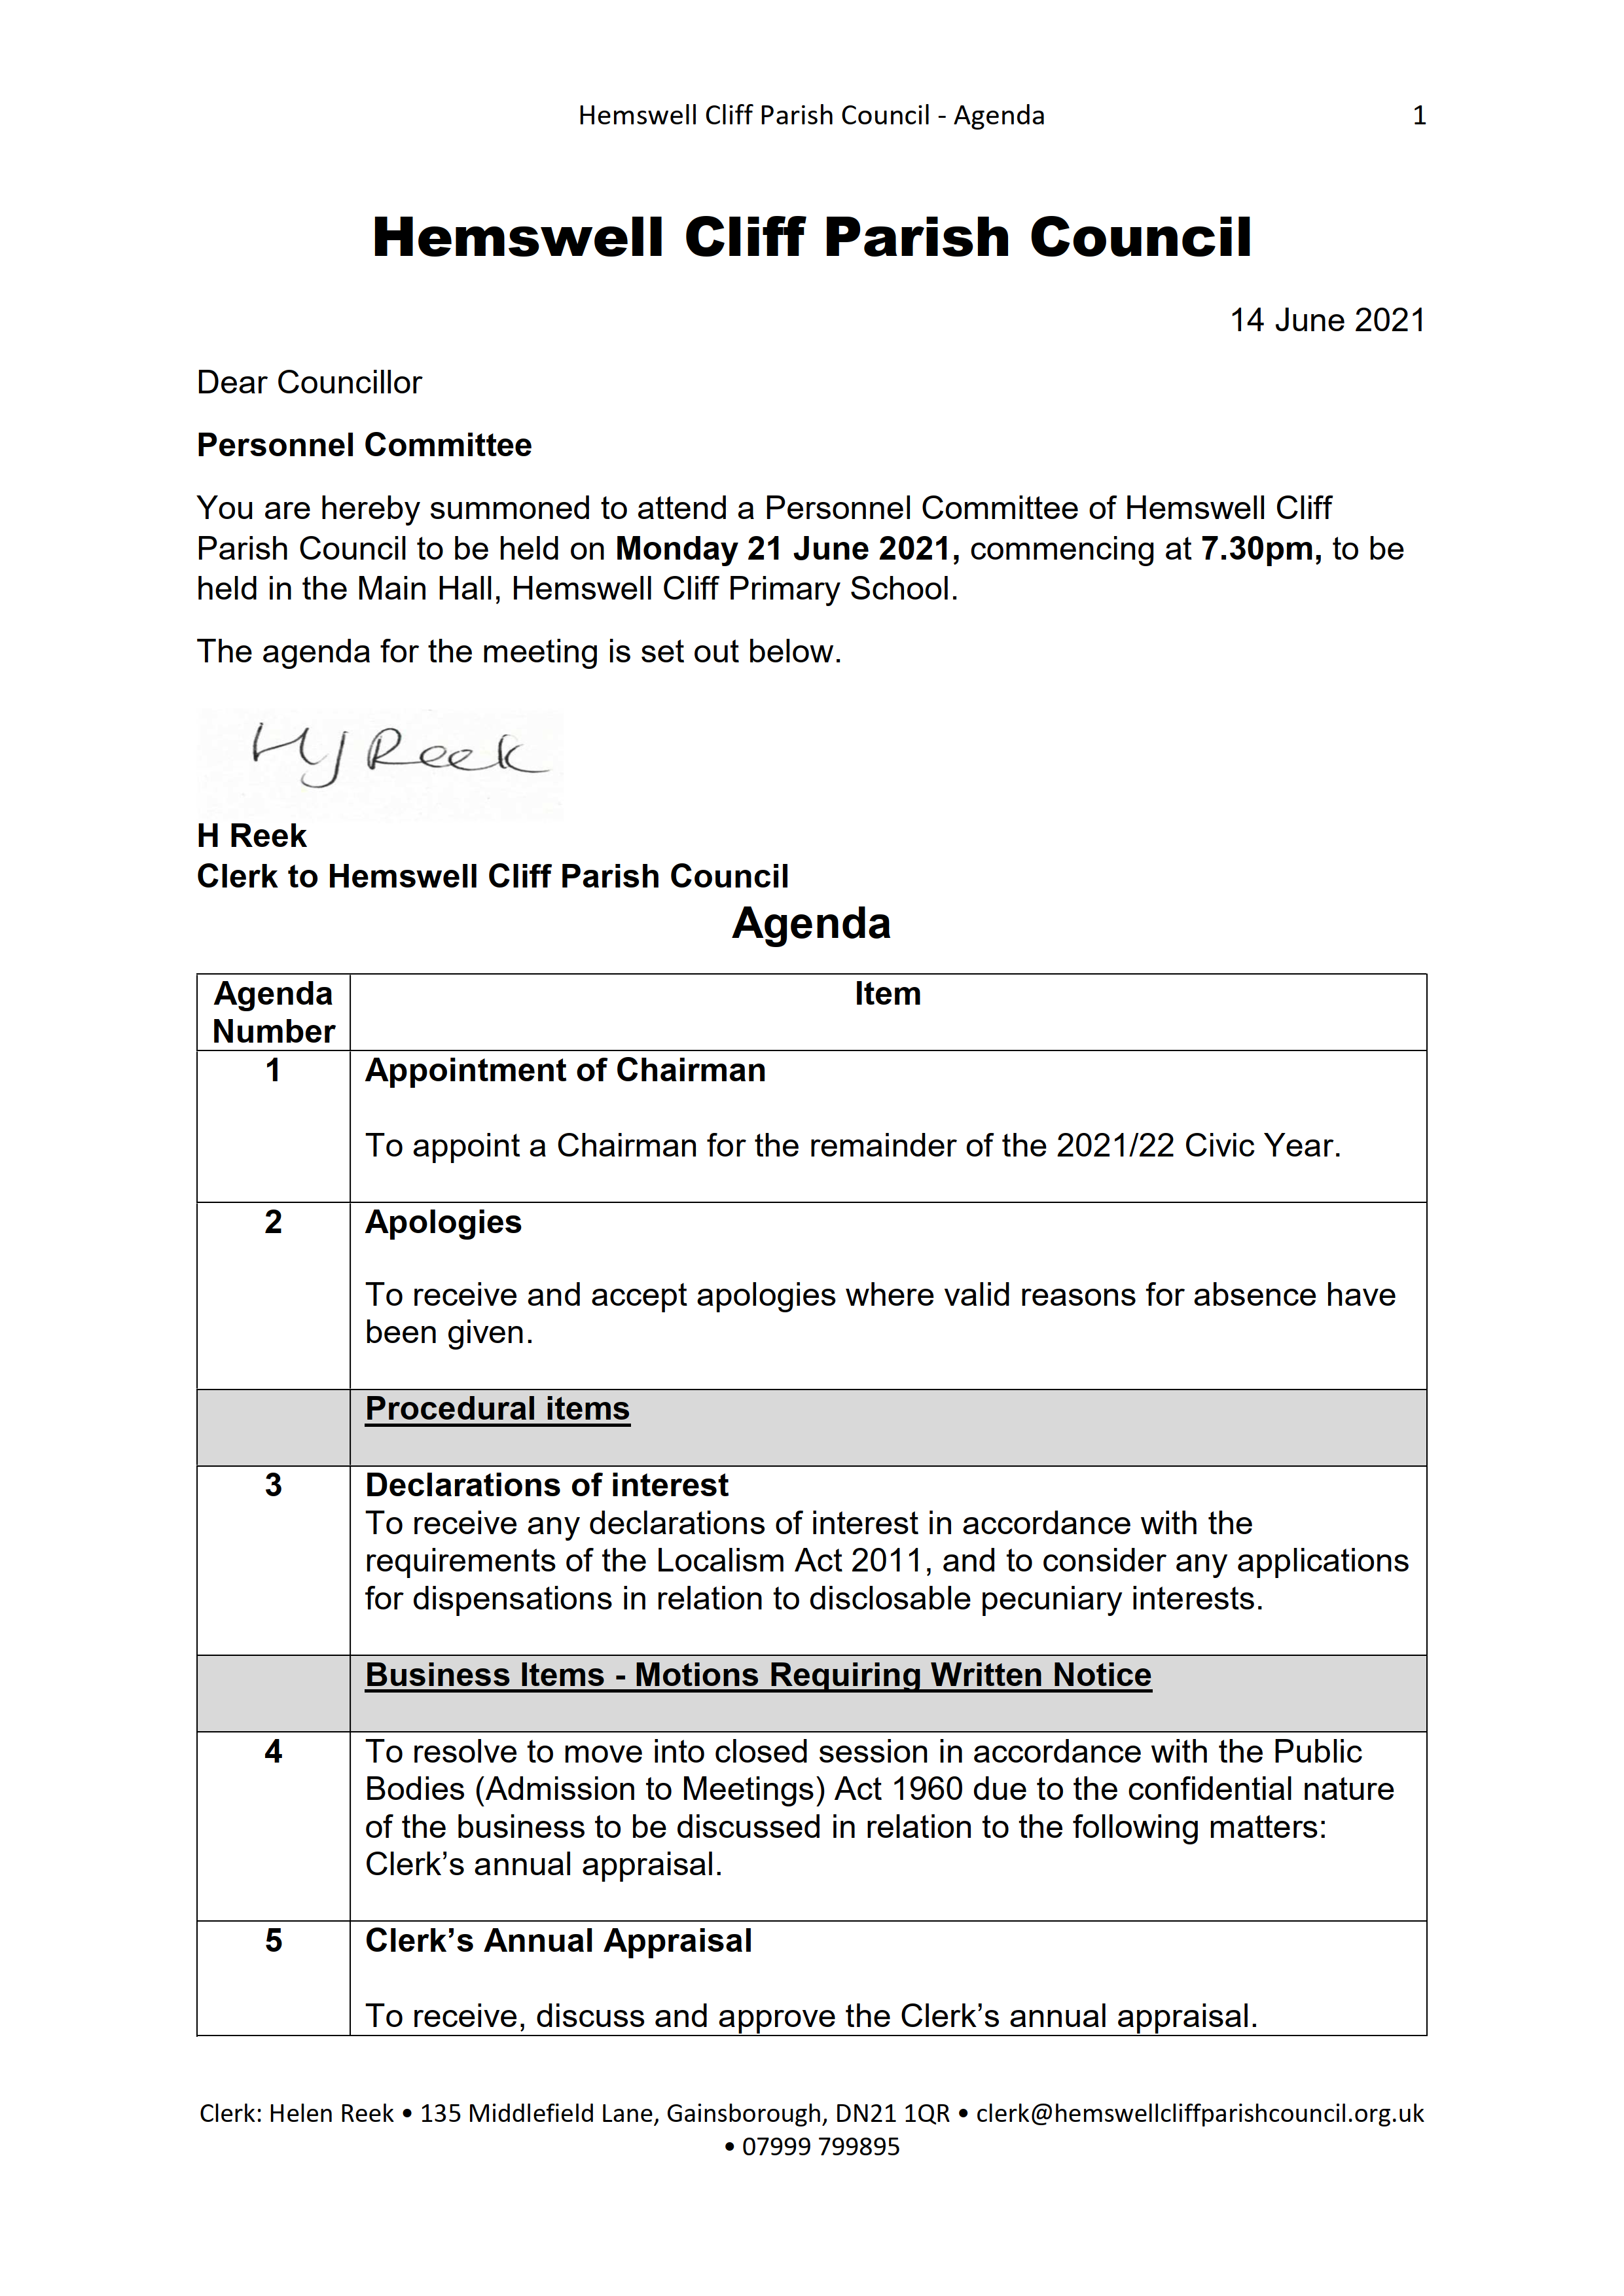 HCPCPers_Agenda_21.06.21_1.png